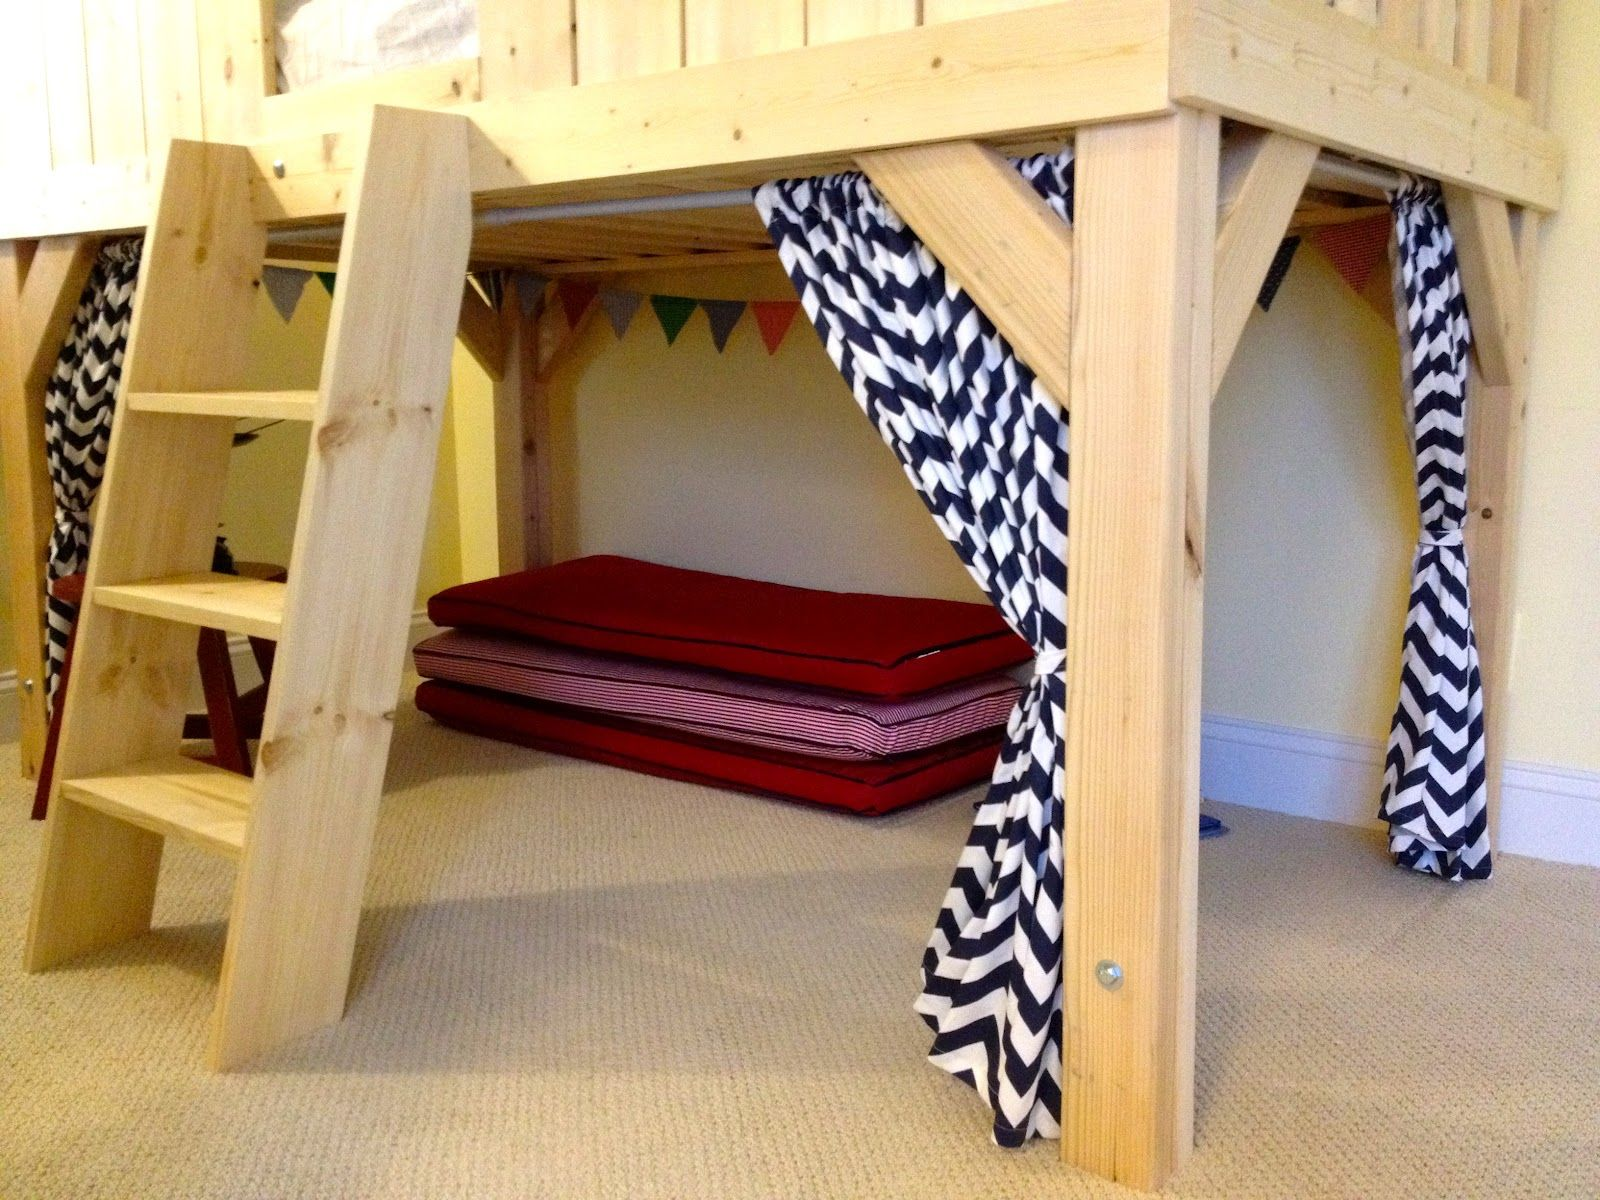 ana white build a clubhouse bed free and easy diy project and ana white build a clubhouse bed free and easy diy project and furniture plans